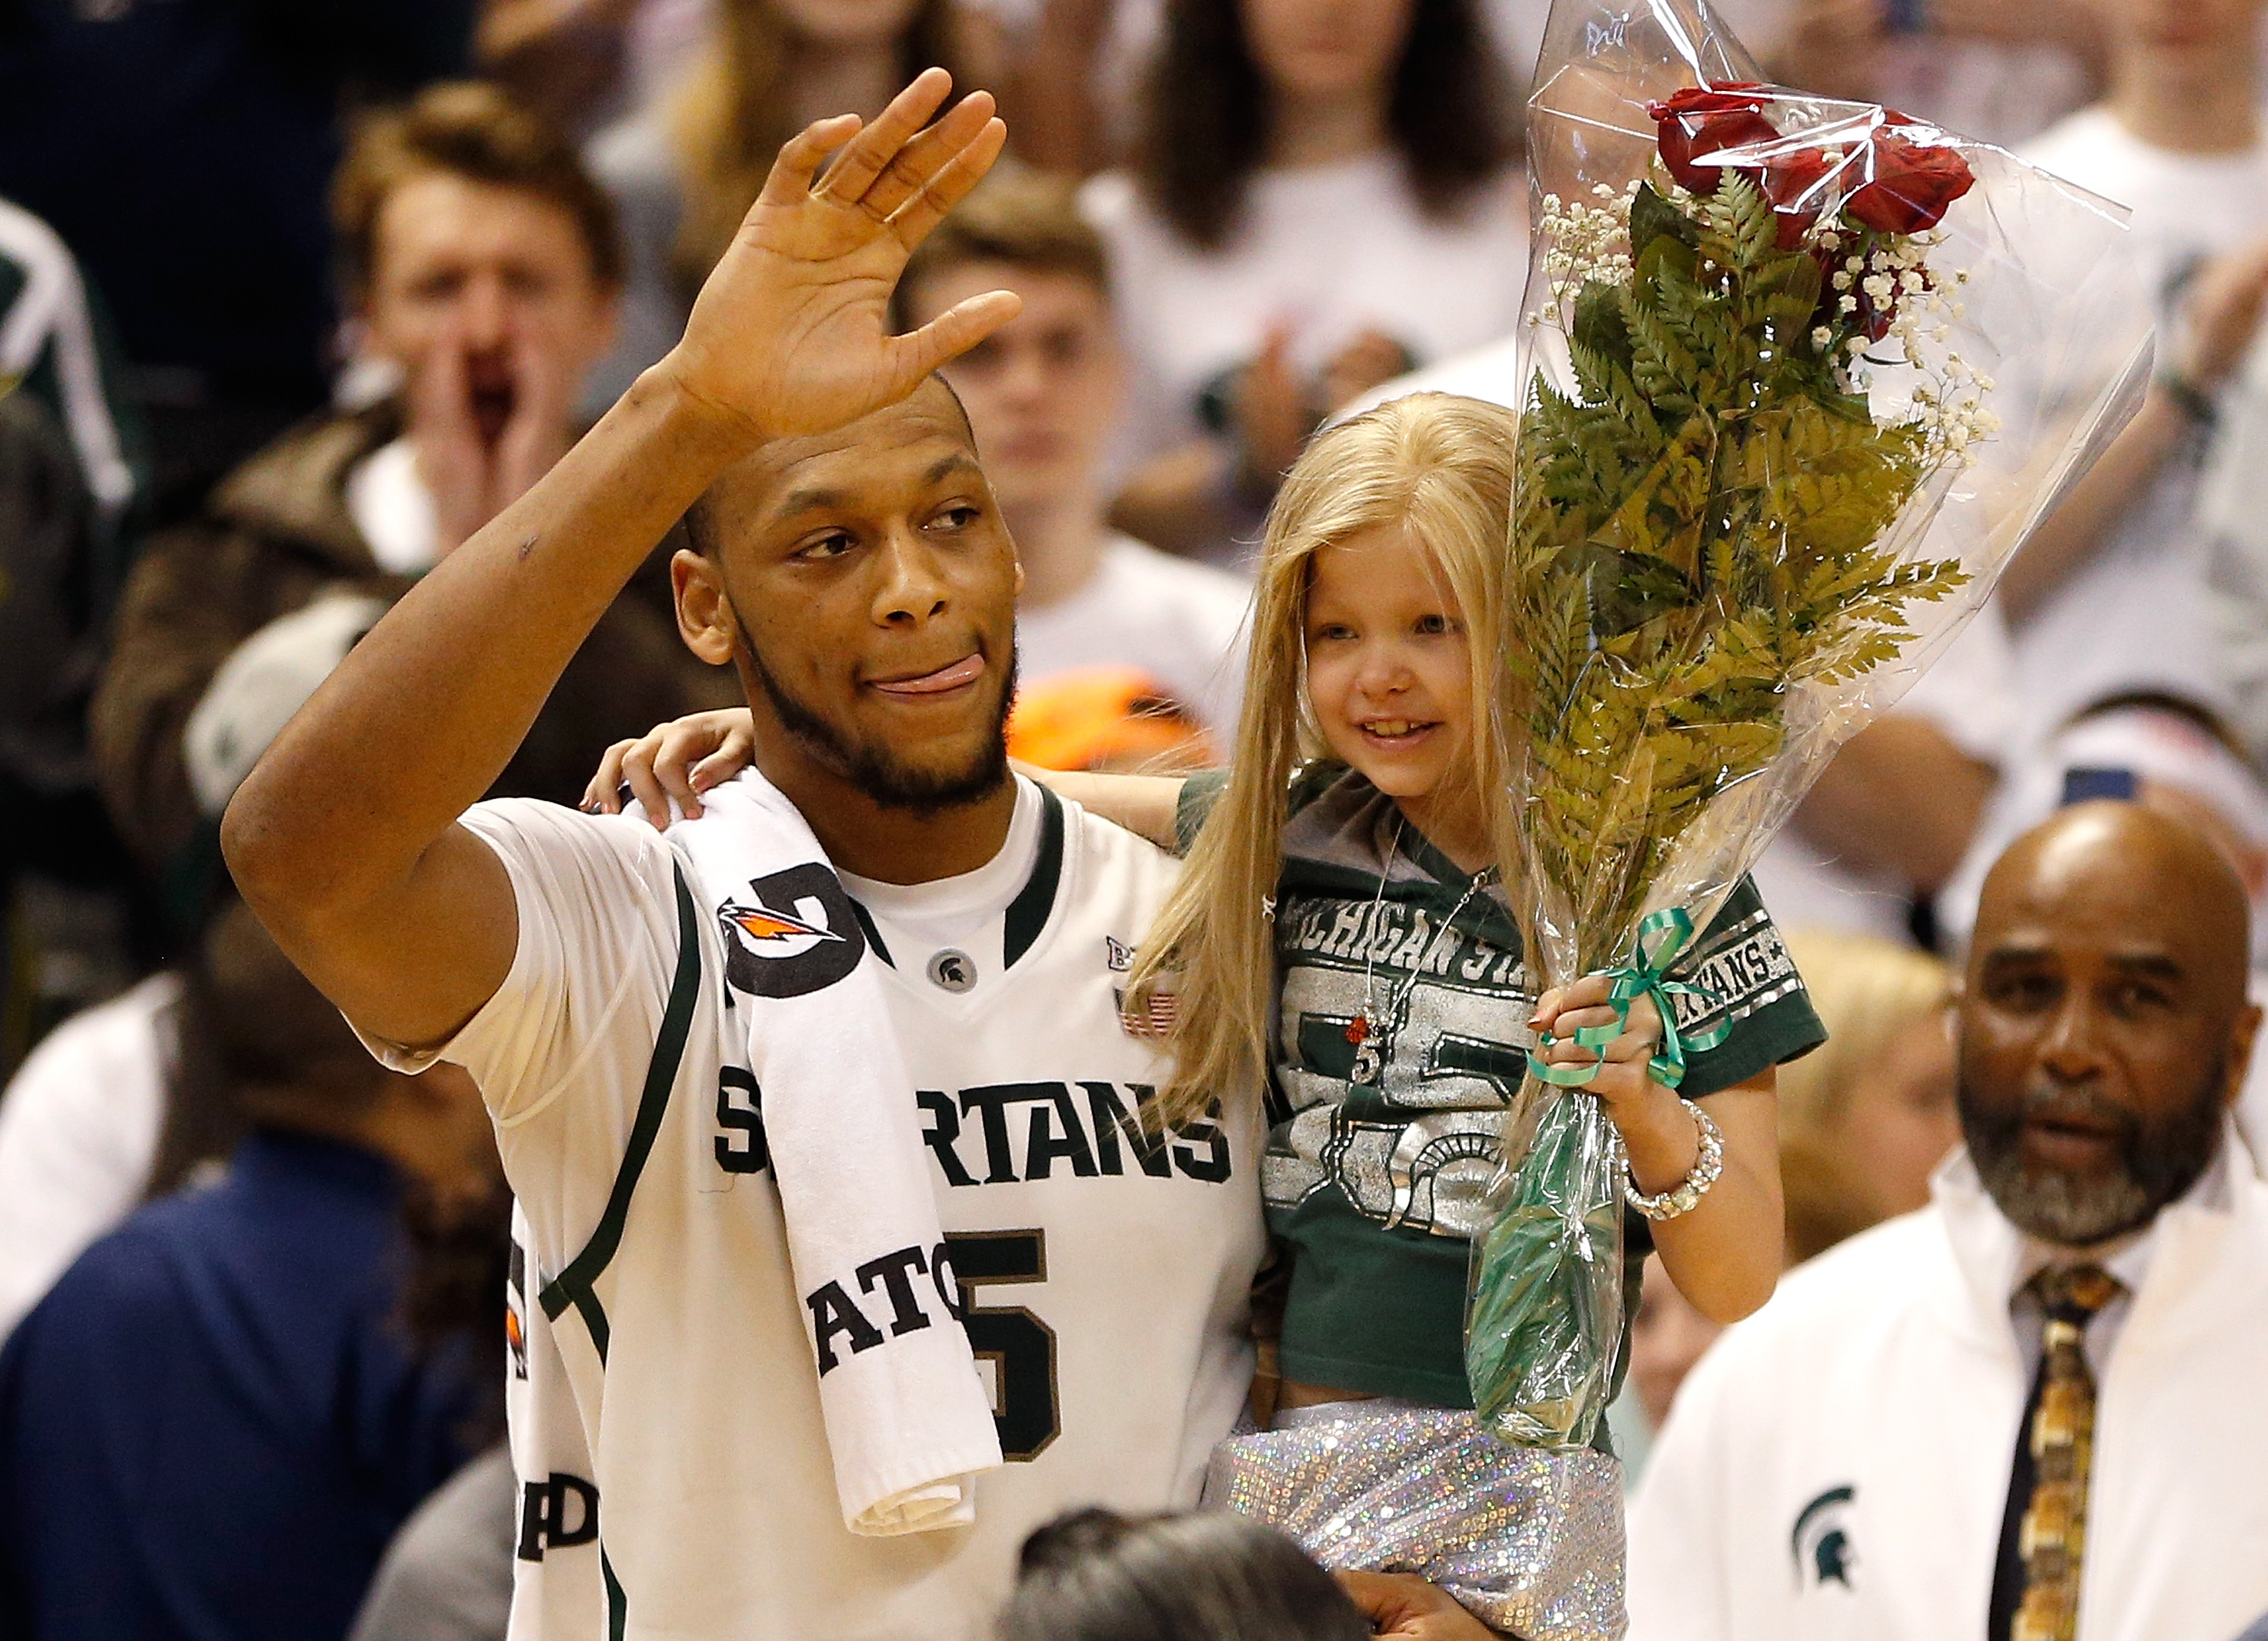 Princess Lacey with Michigan State Basketball Player